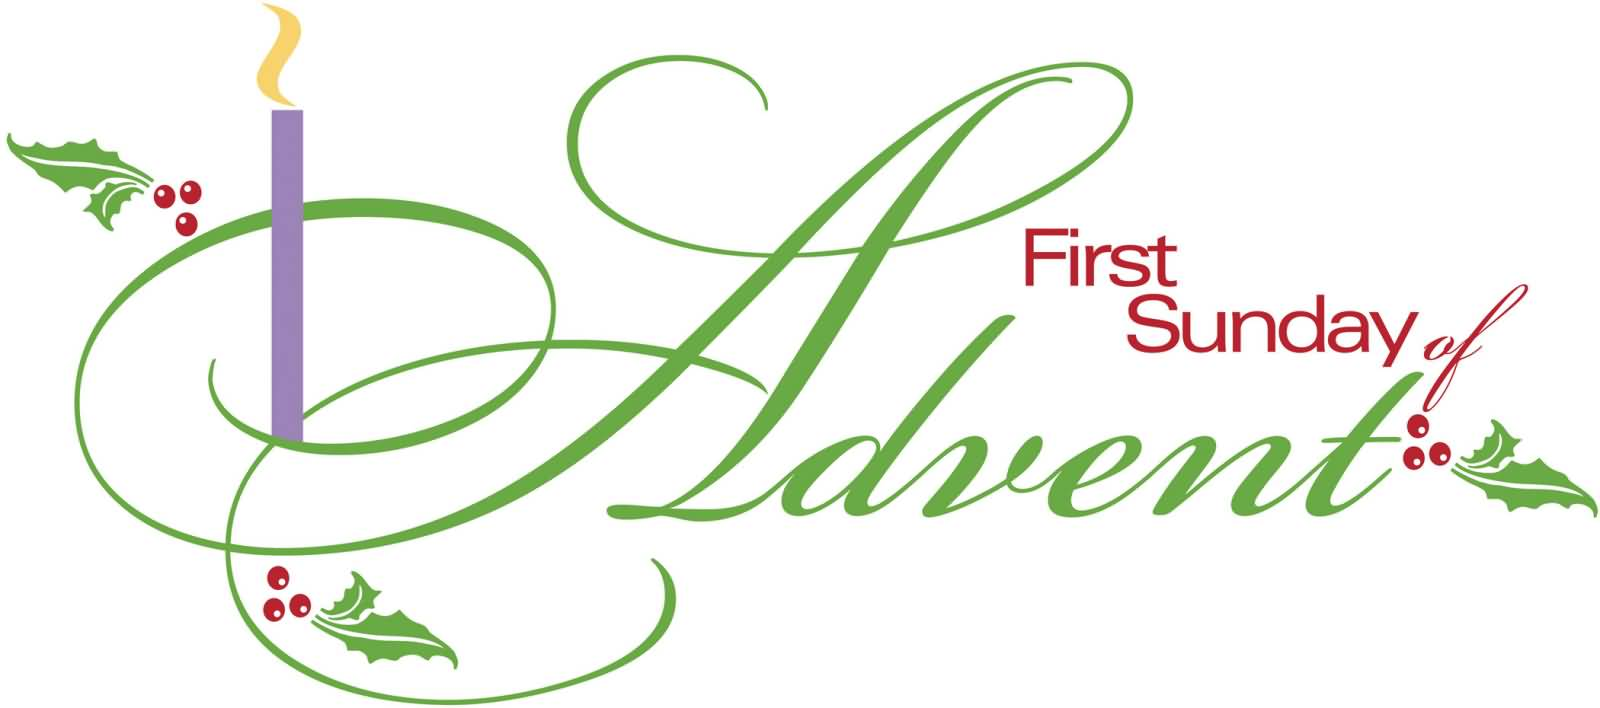 First sunday of advent 2017 clipart clip royalty free First Sunday In Black And White Clipart - Free Clipart clip royalty free